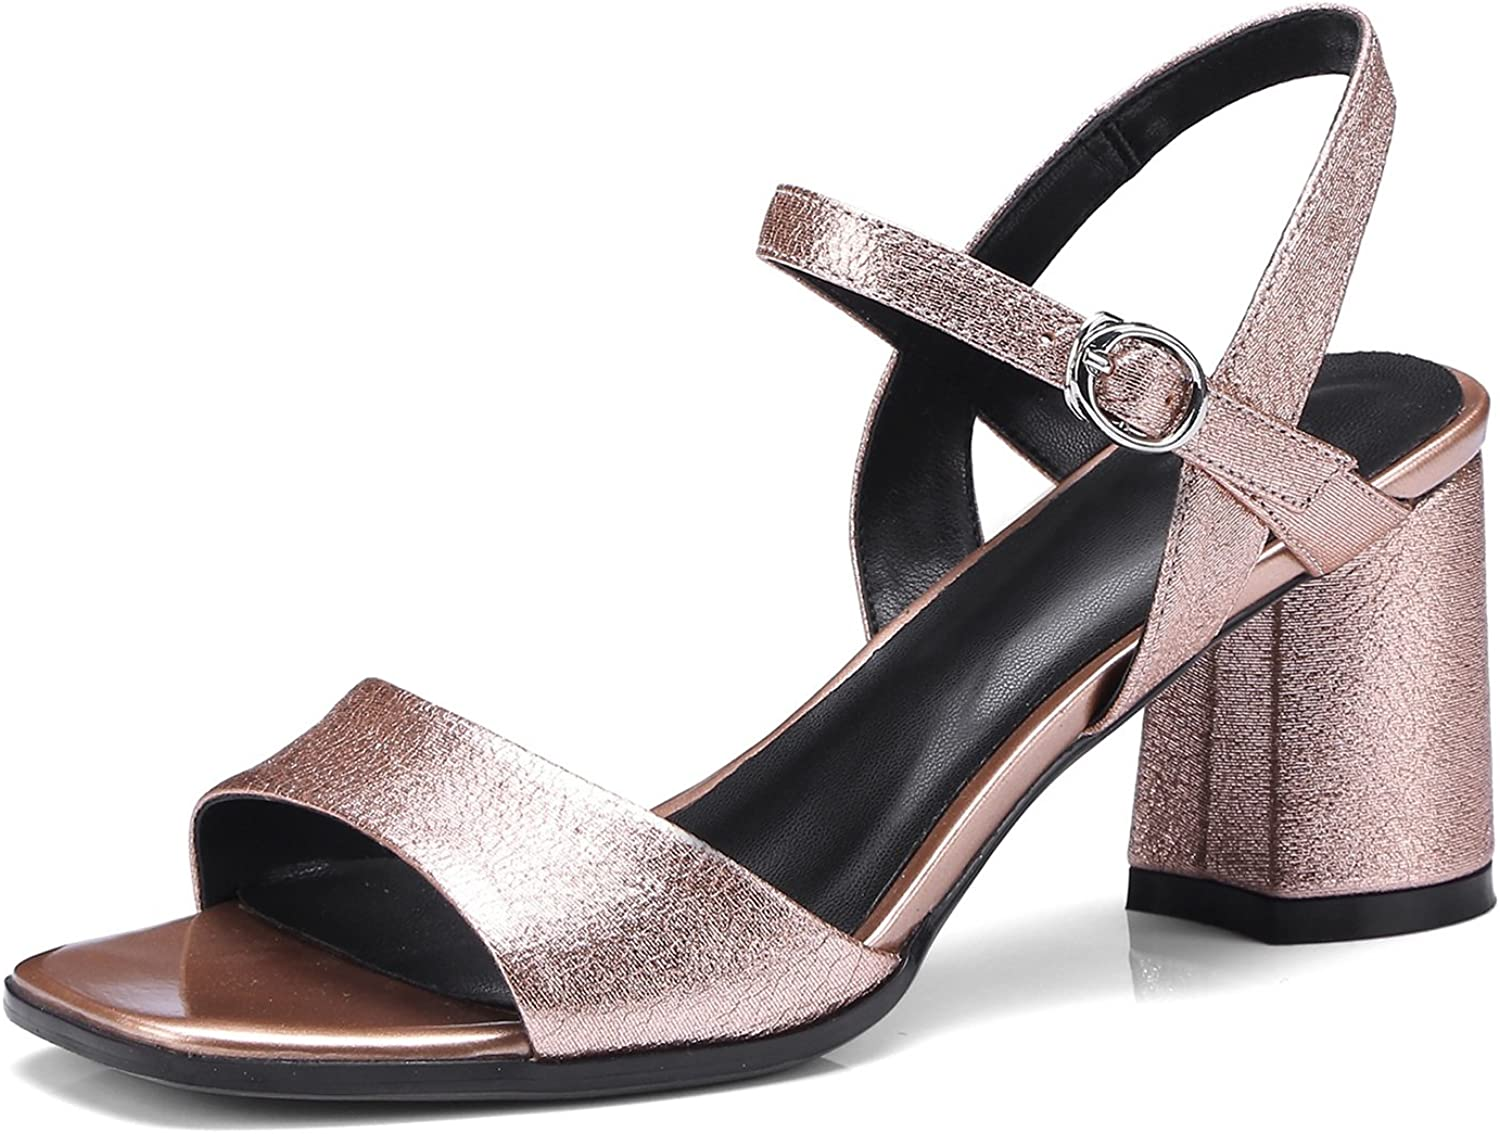 Women's shoes Leather 2018 Spring Summer Club shoes Sandals Chunky Heel Open Toe Metal for Dress